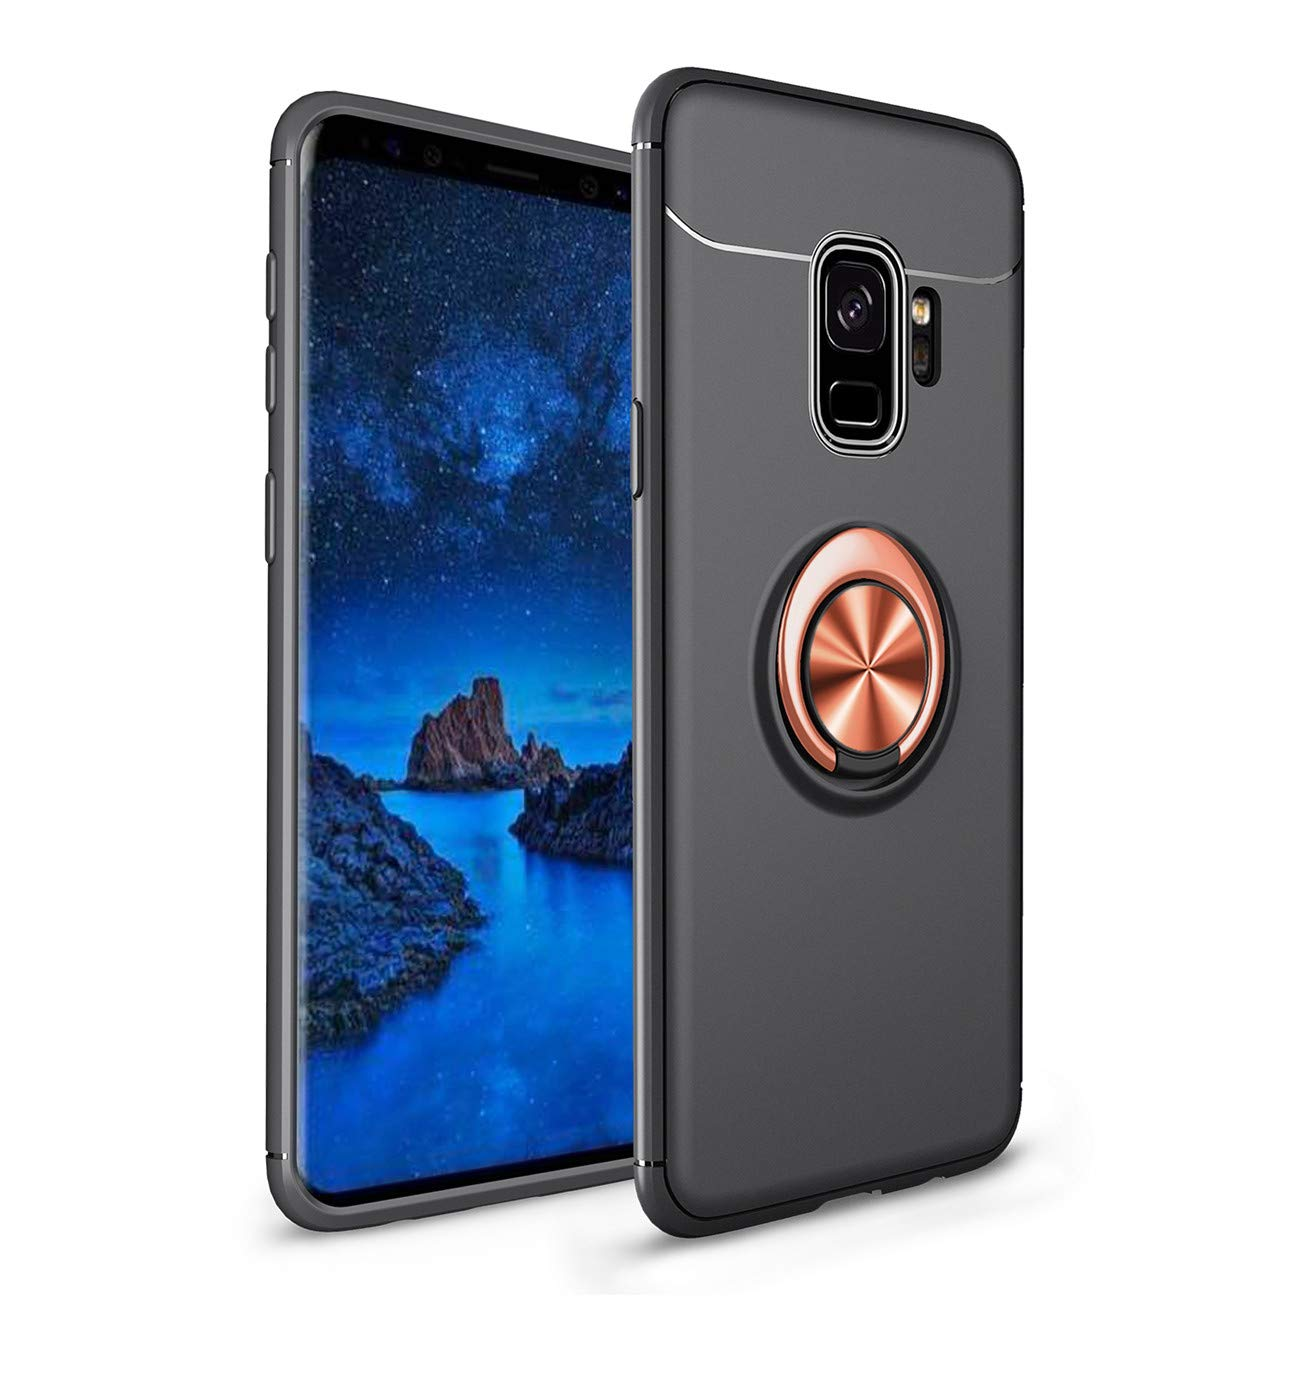 Case Compatible with Samsung Galaxy S9 S9 Plus Ultra Thin PC Cover Finger Ring Stand Holder Slim Hard Protective Skin Back 360 Degree Rotating Stand Car Holder Black, Galaxy S9 Plus